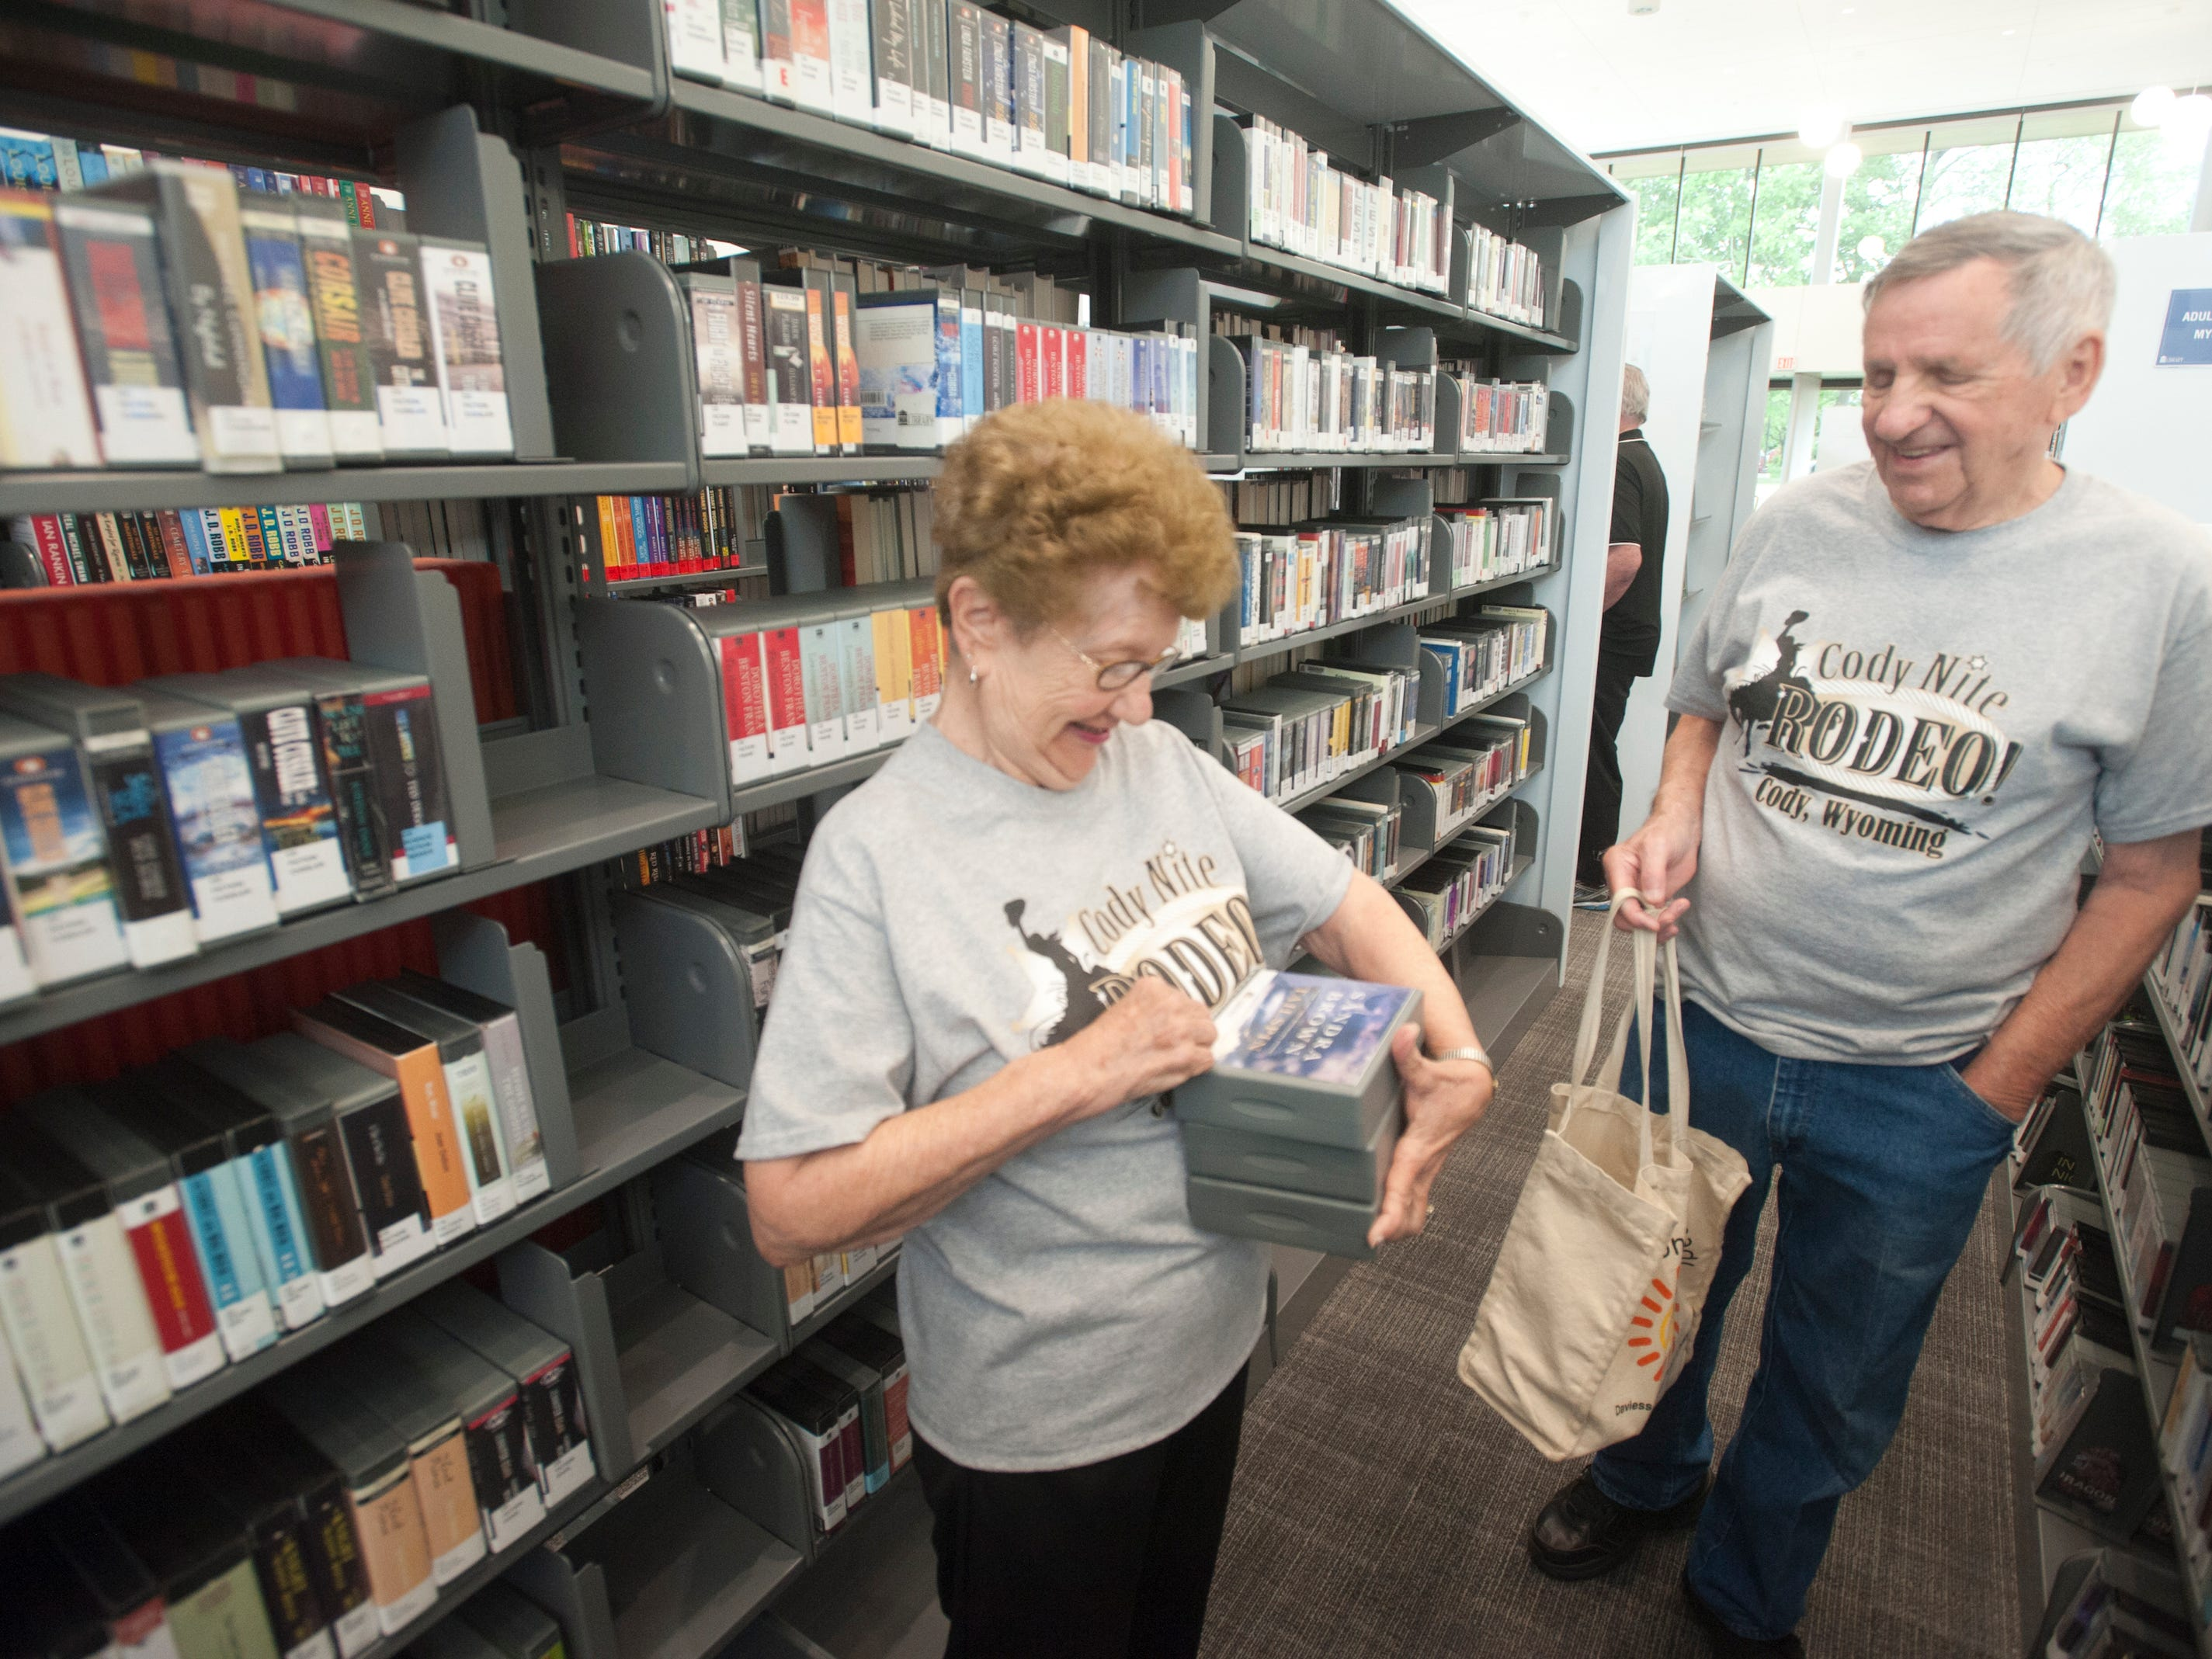 Bonnie and David Montgomery of Windy Hills, who have been married for 62 years, stopped into the library for some audio books. May 9, 2019